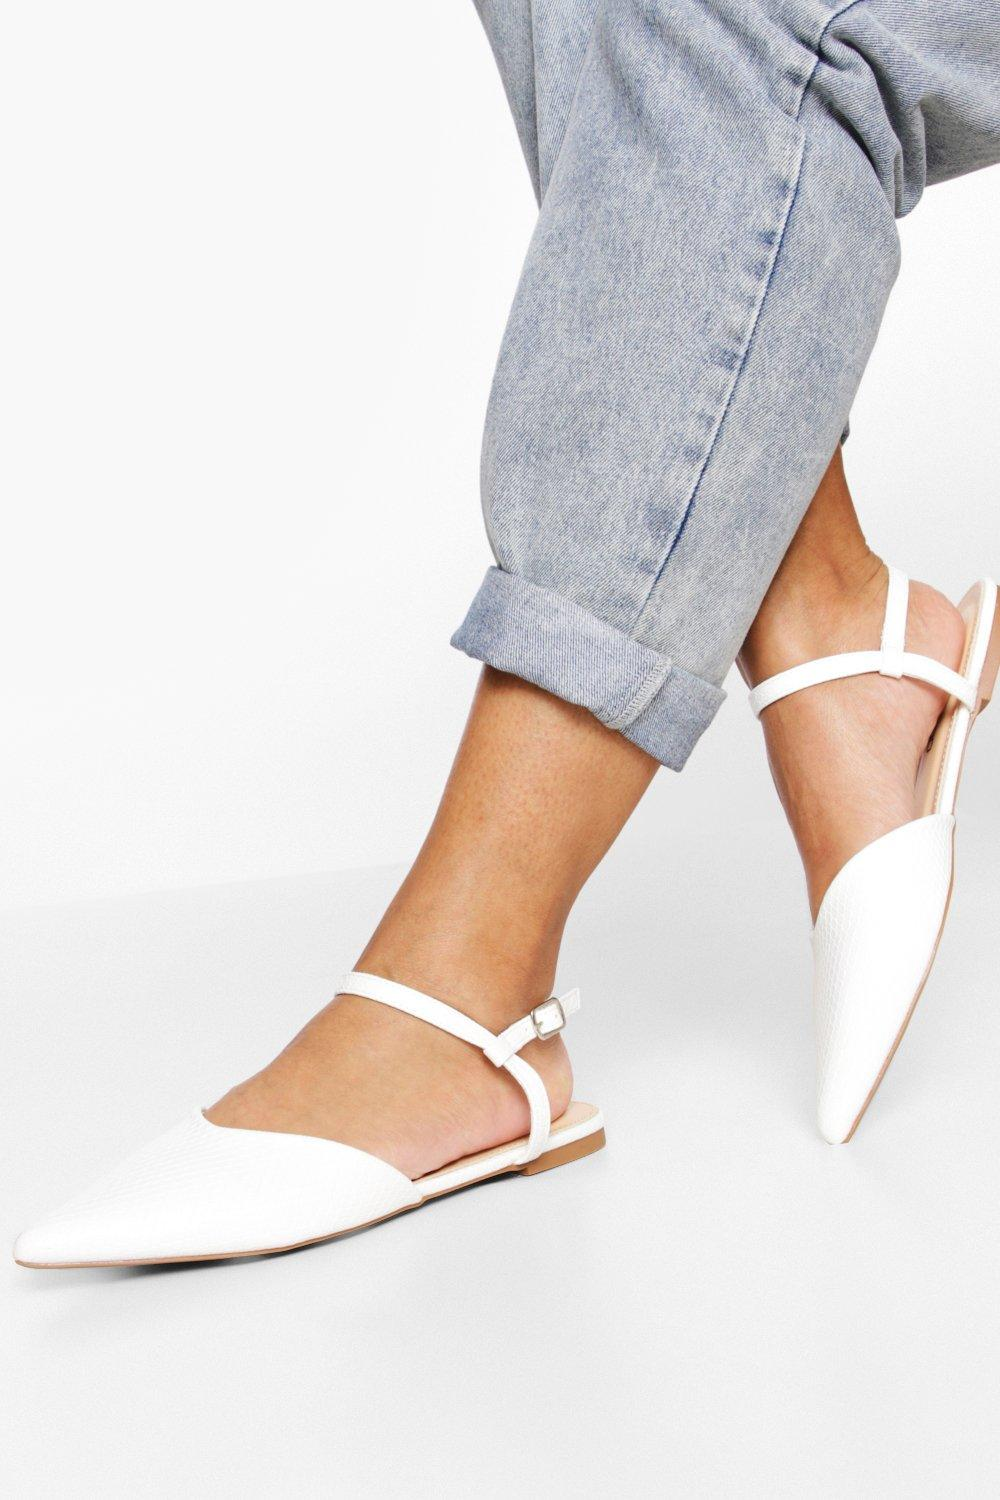 Retro Vintage Flats and Low Heel Shoes Womens 2 Part Pointed Ballerina - White - 8 $12.00 AT vintagedancer.com